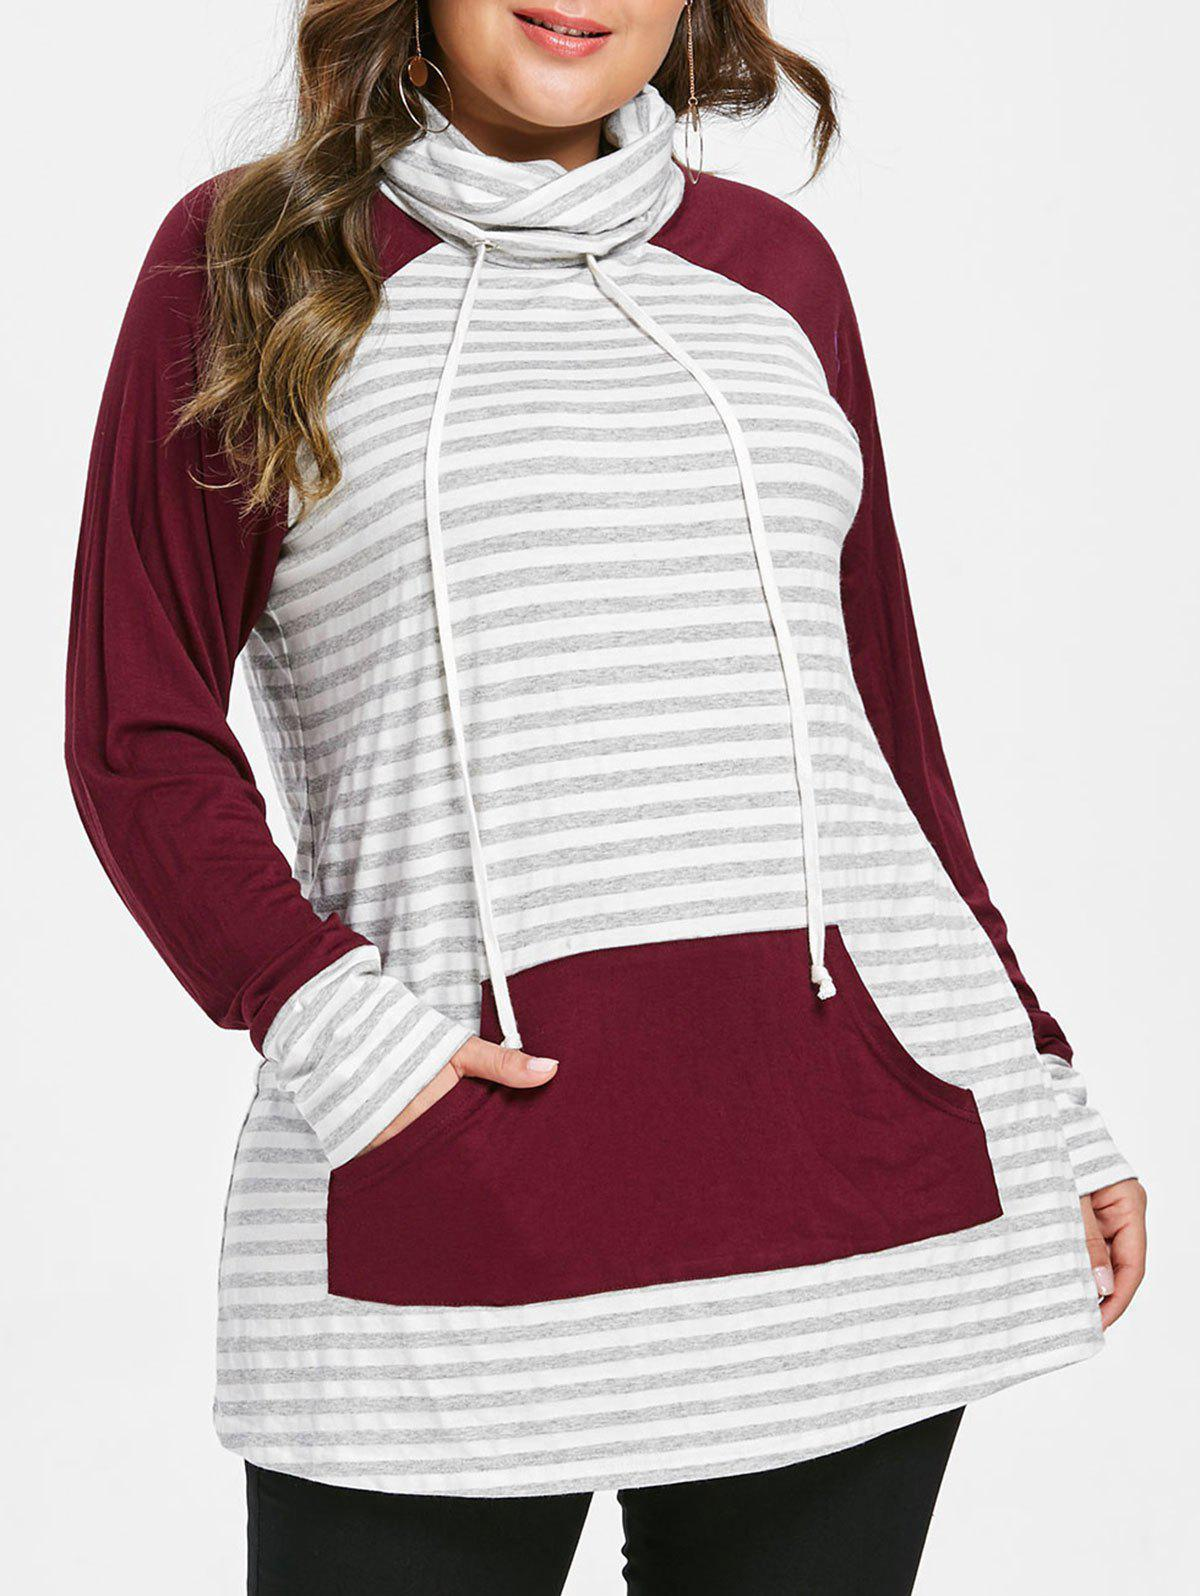 416ac84005 2019 Cowl Neck Striped Plus Size Hoodie